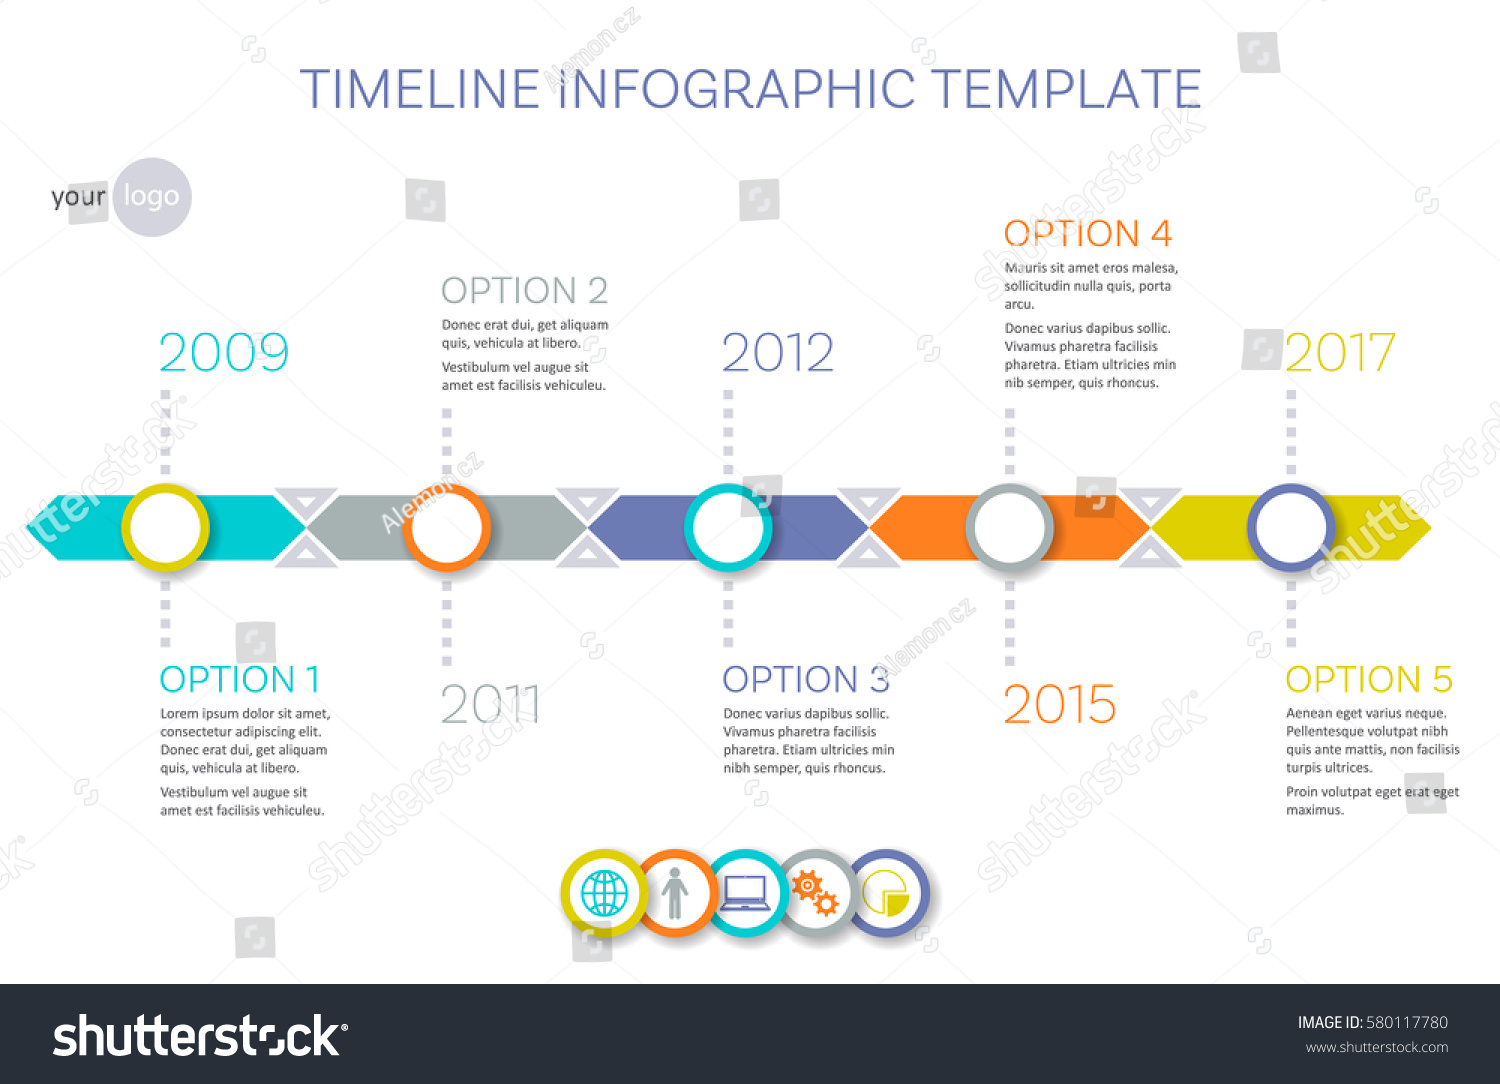 Vector Timeline Infographic Template History Your Stock Vector - Timeline infographic template